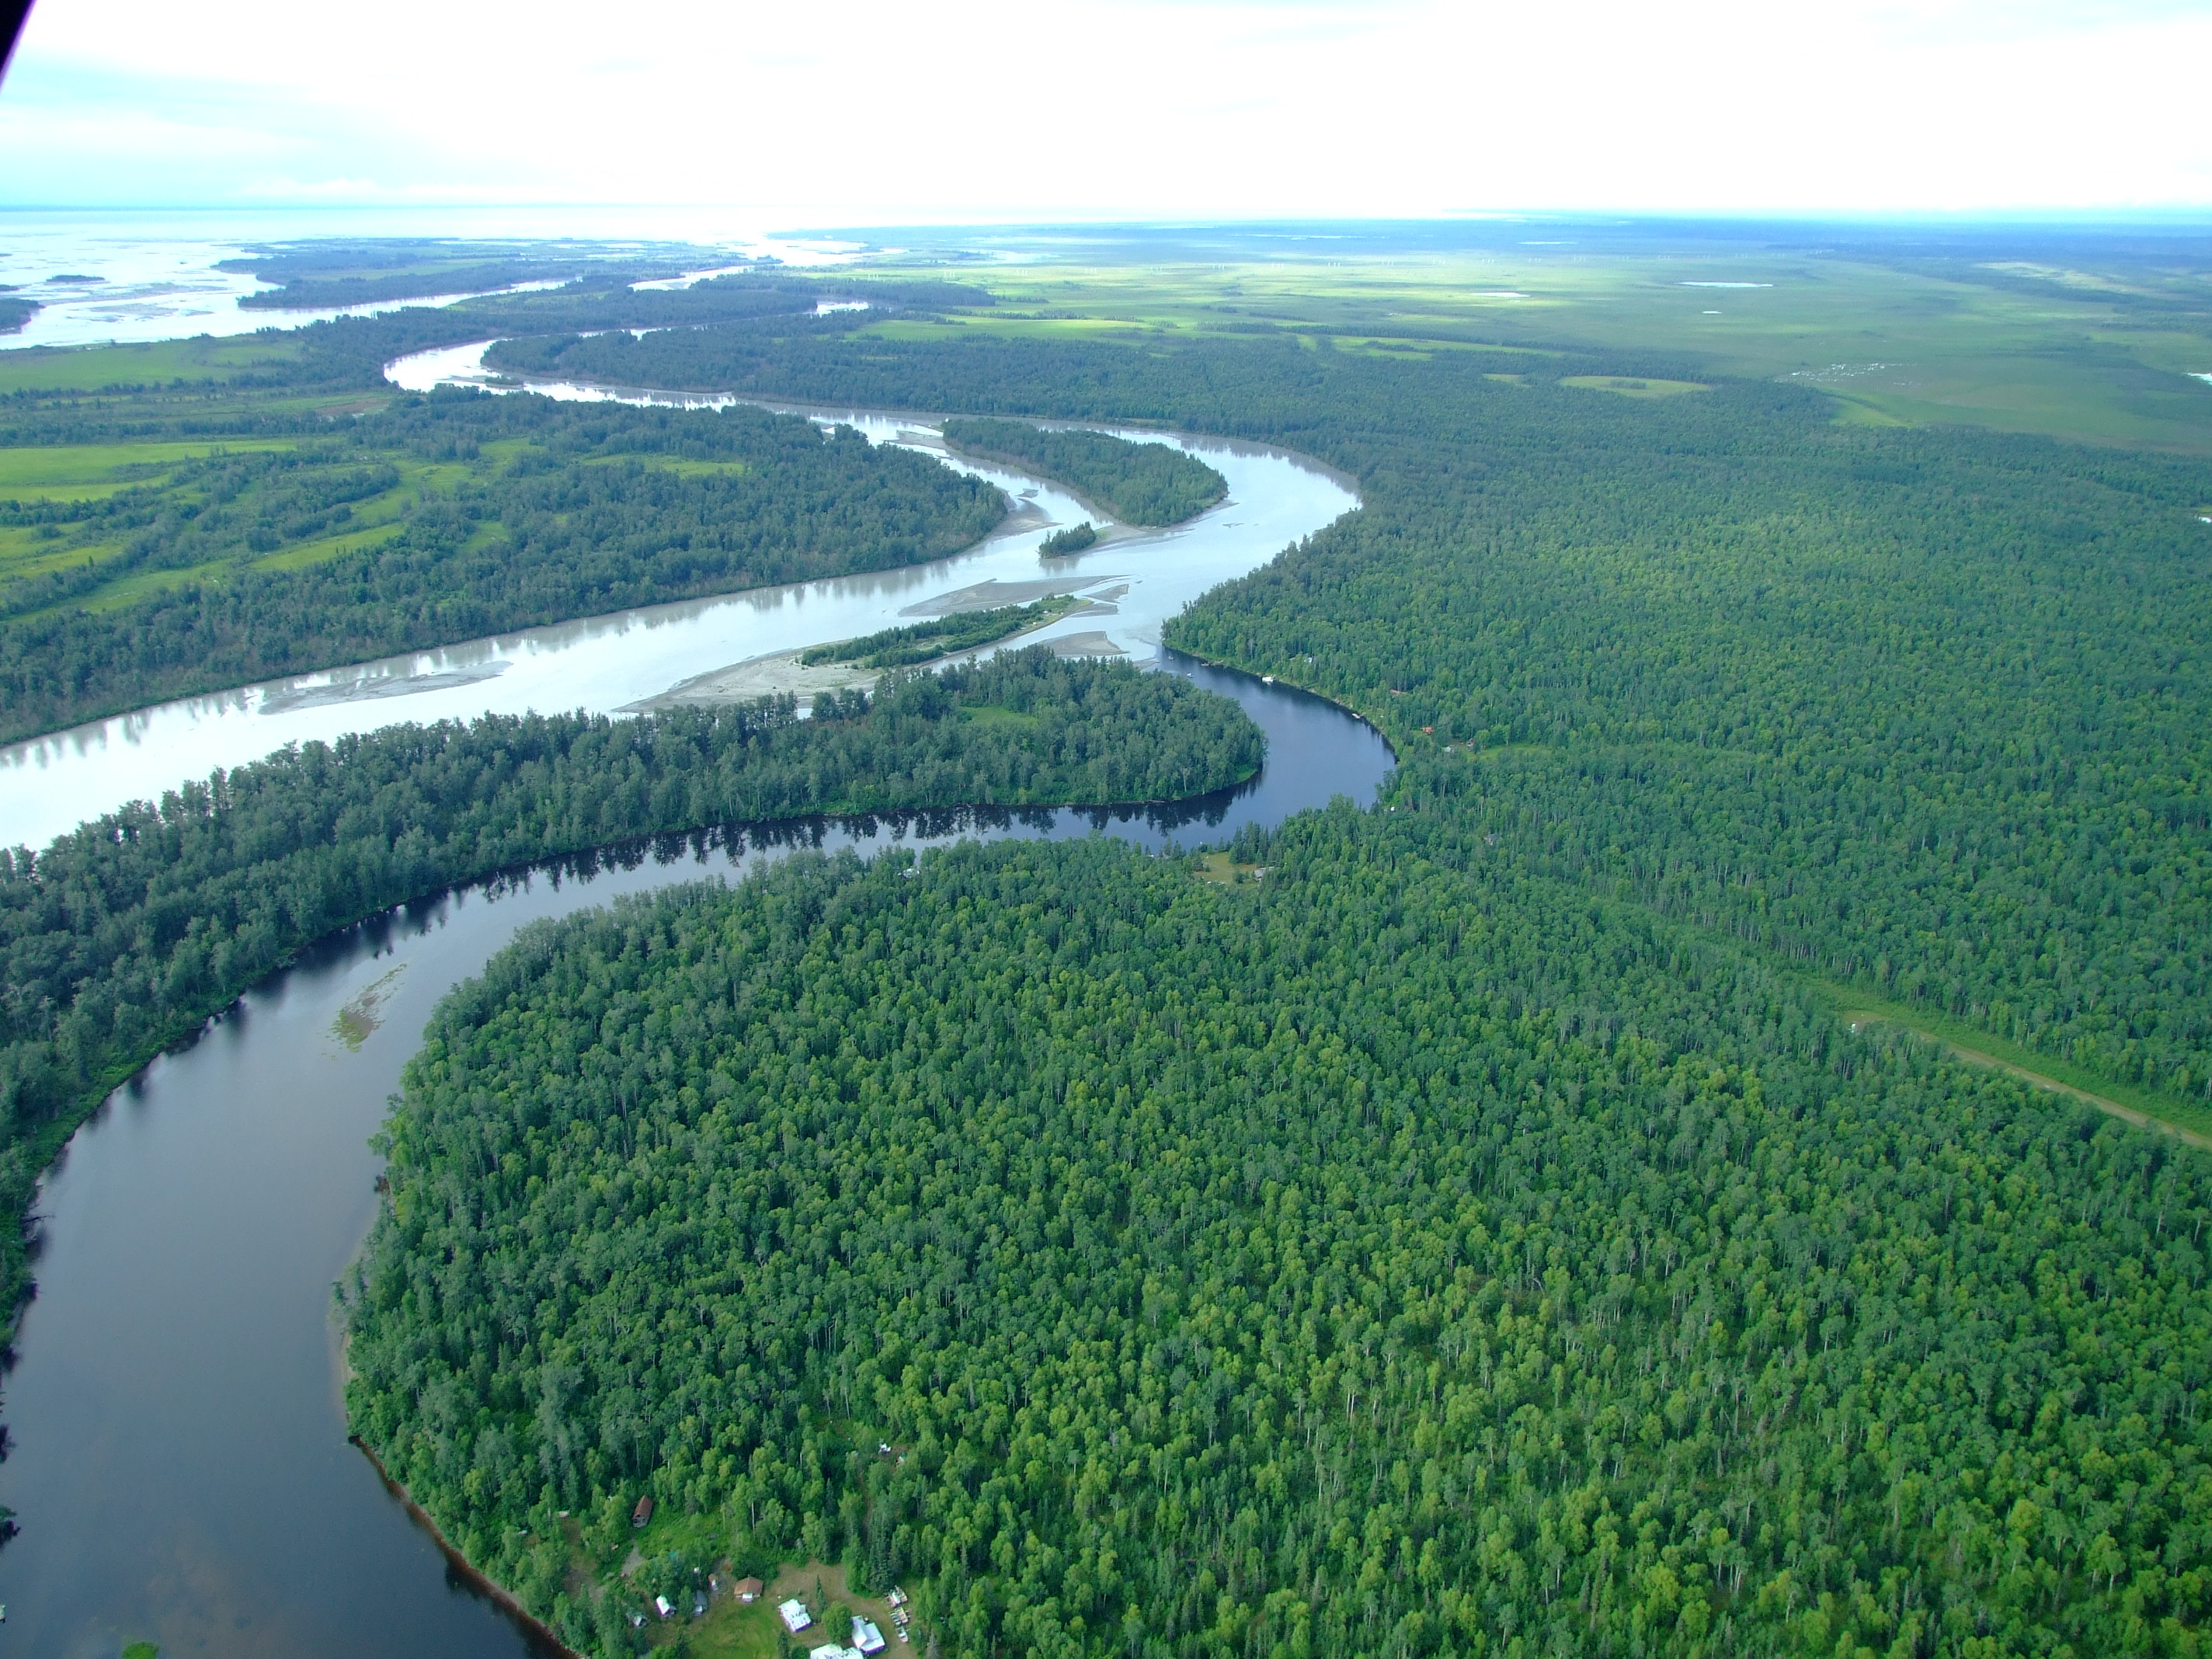 The village of Alexander (population 40) curves around the right bank of Alexander Creek before it flows into the Susitna River. There was a native settlement recorded here in 1898.